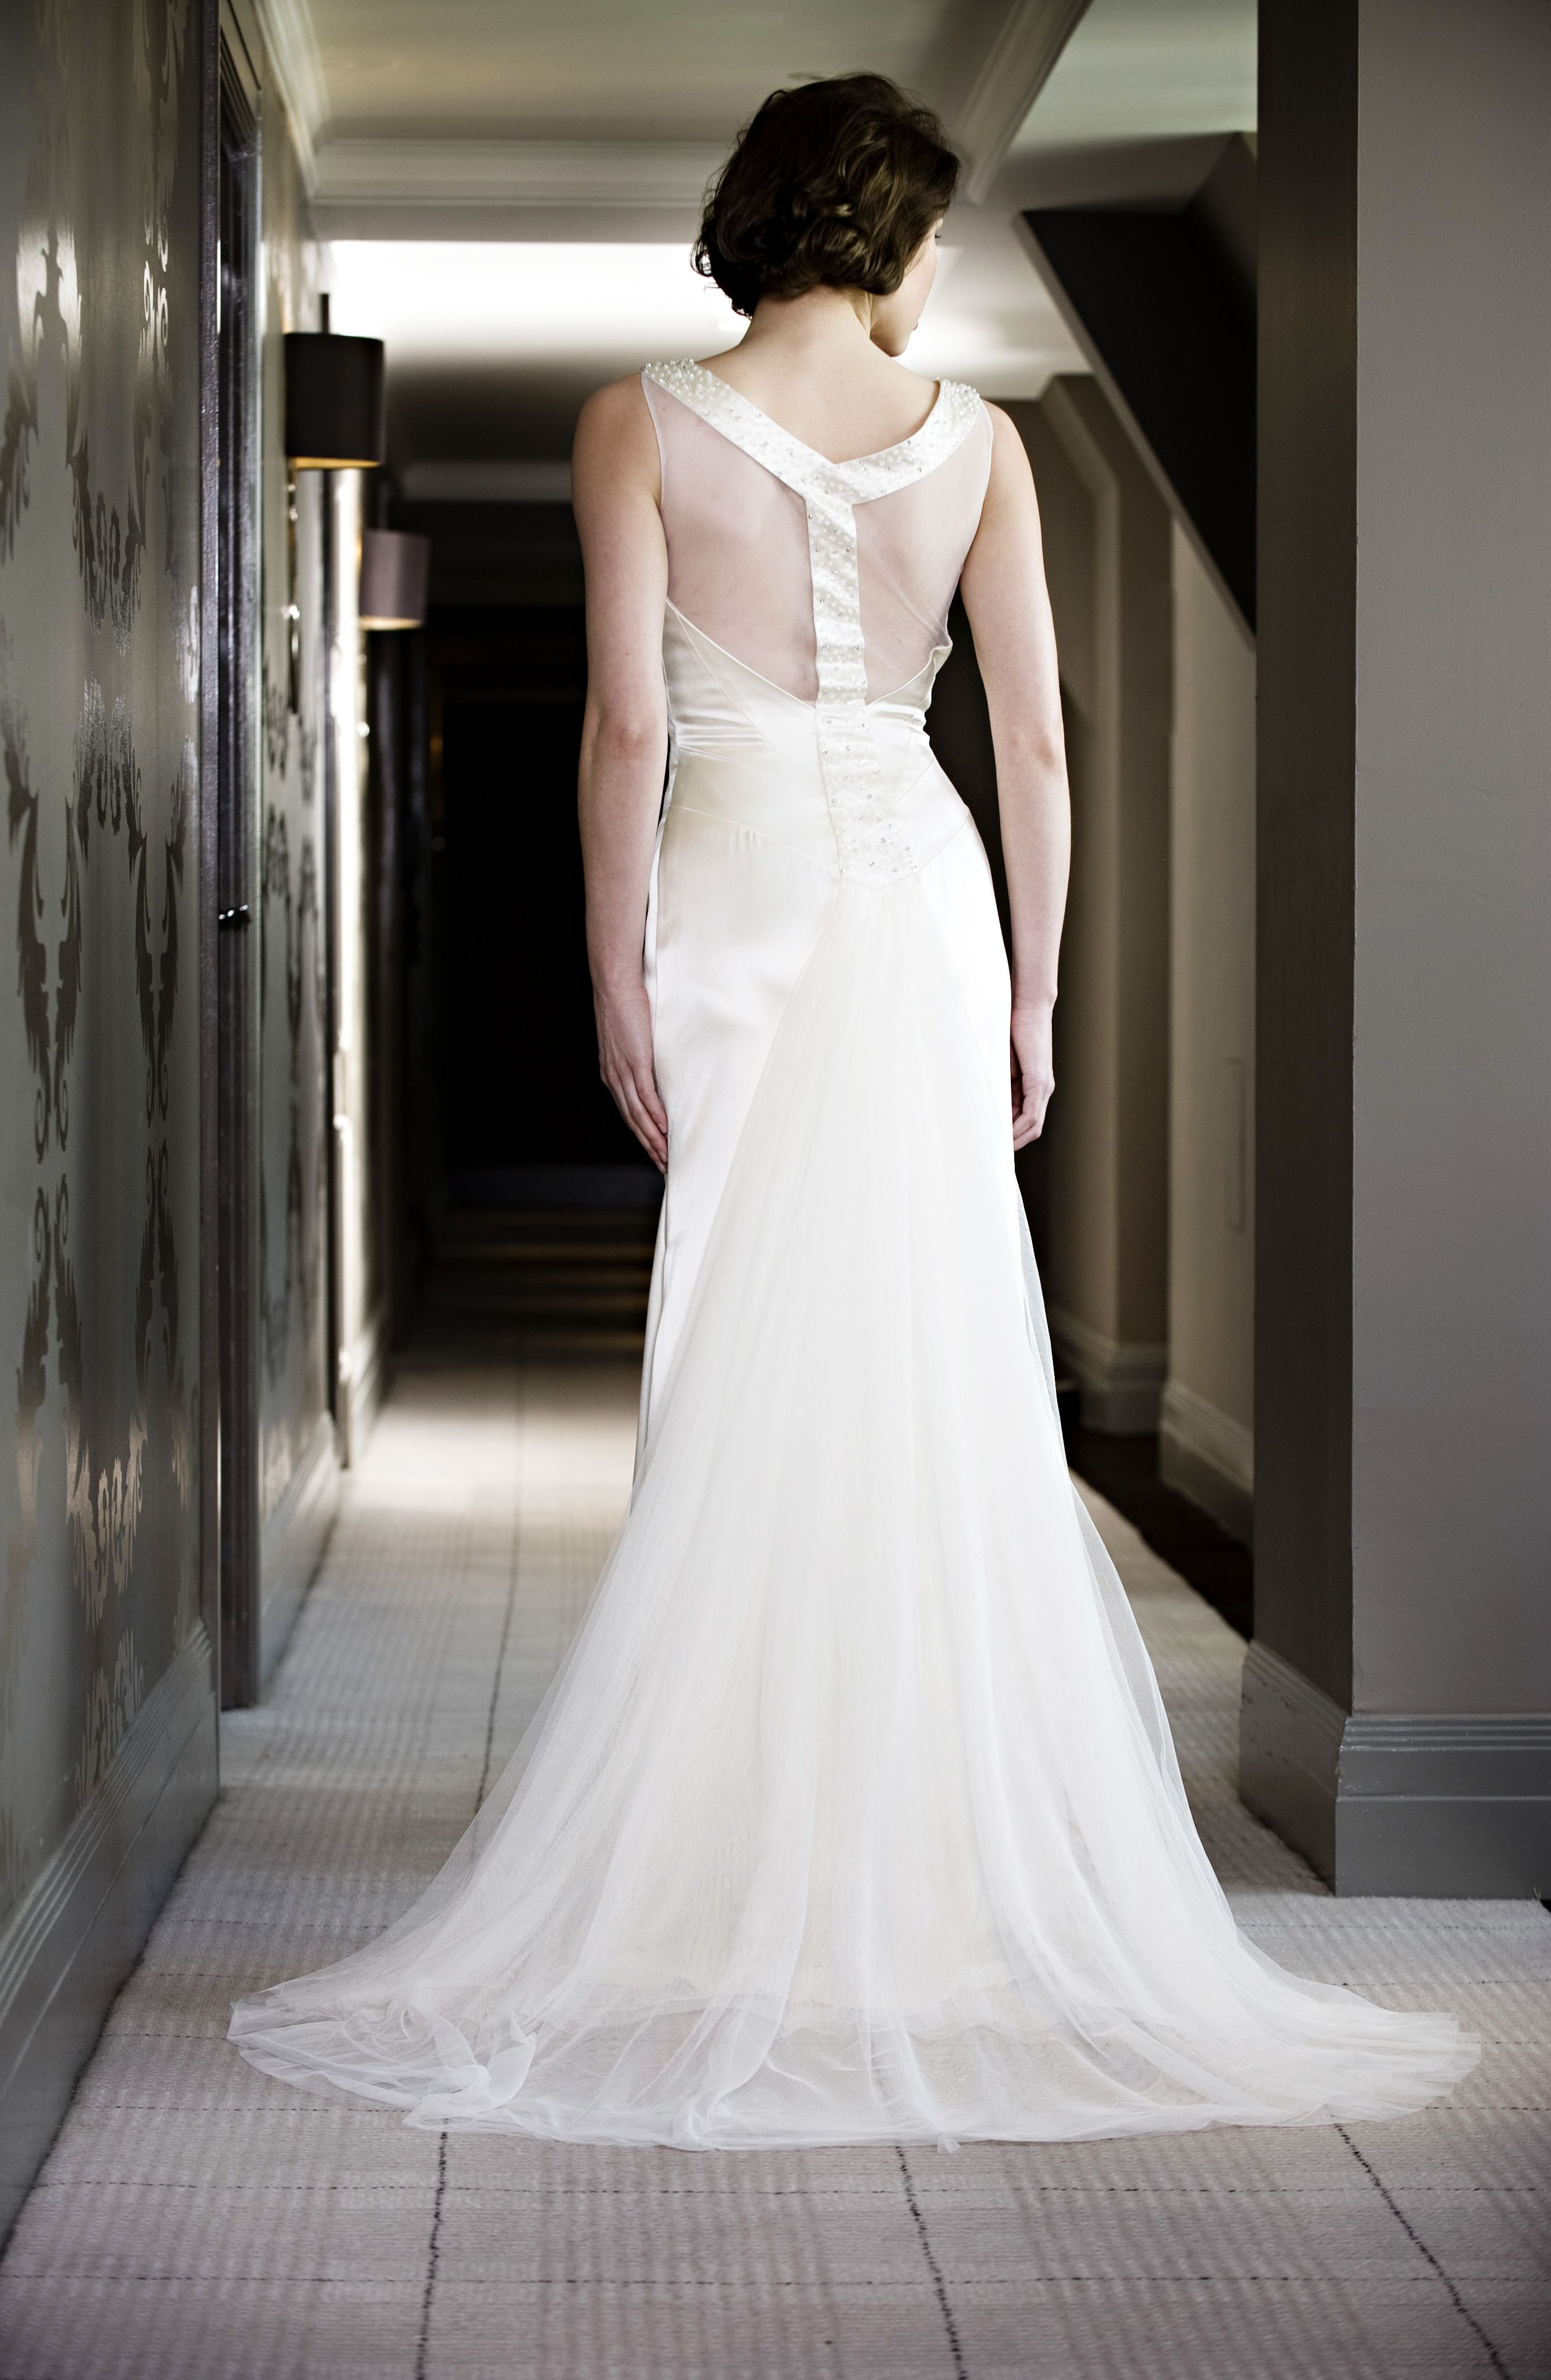 Elouise - slinky silk satin and silk tulle with amazing beaded back detail - by Madeline Isaac-James.